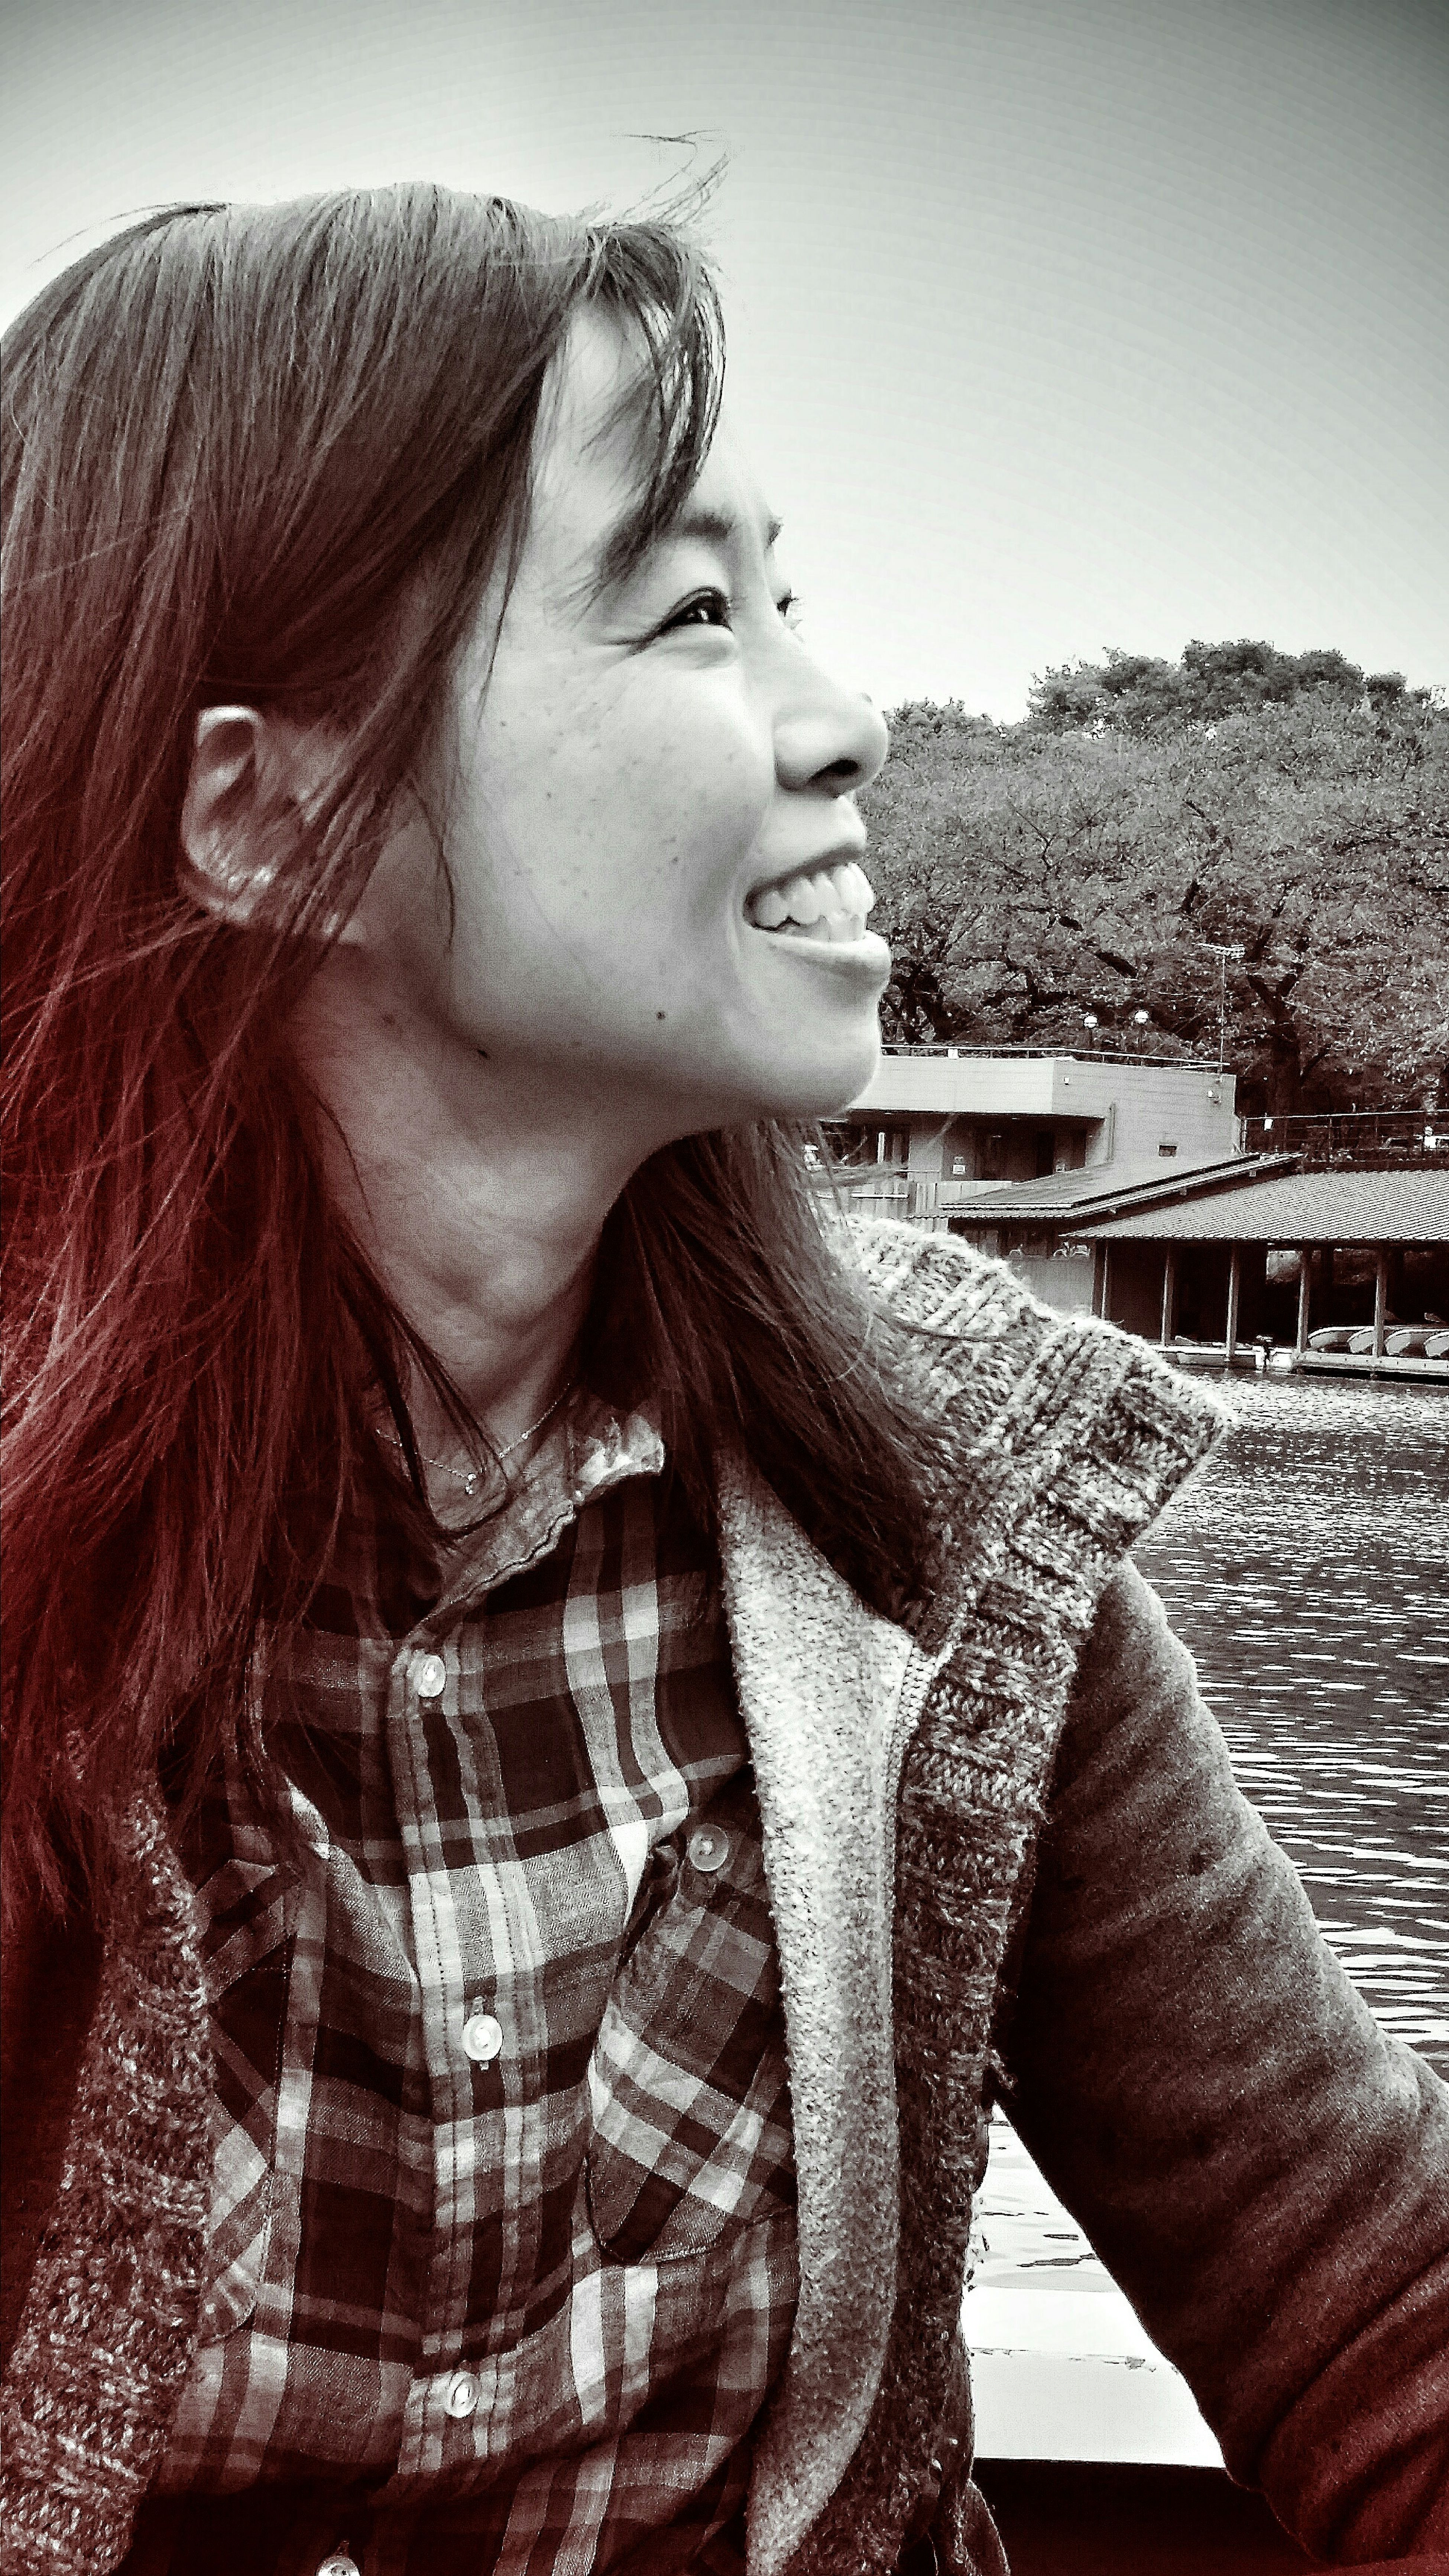 Akiko Smile Smilecollection Portrait Portrait Of A Friend Boating Chidorigafuchi Chiyoda Moat Imperial Palace EarlyNov2015 Tokyoautumn2015 Tokyo Japan Travelphotography